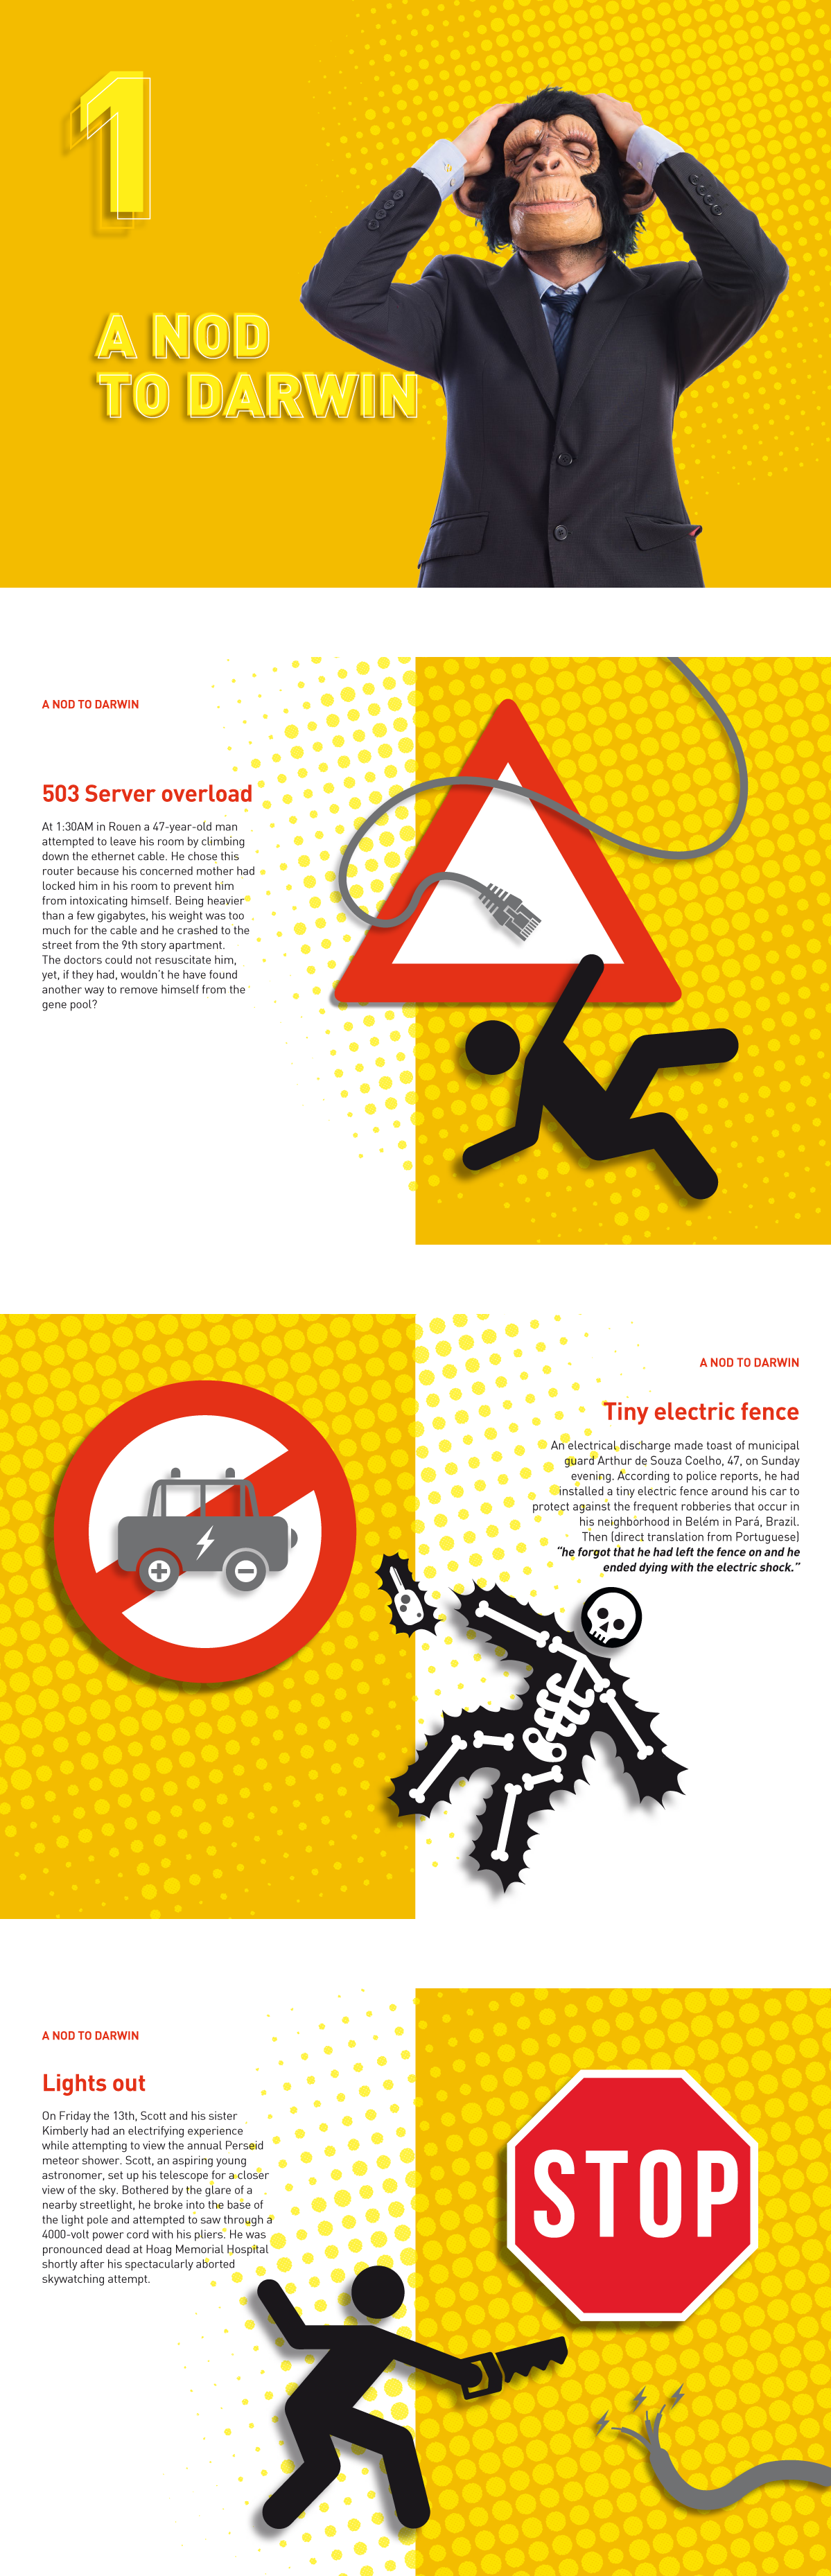 Darwin Awards booklet